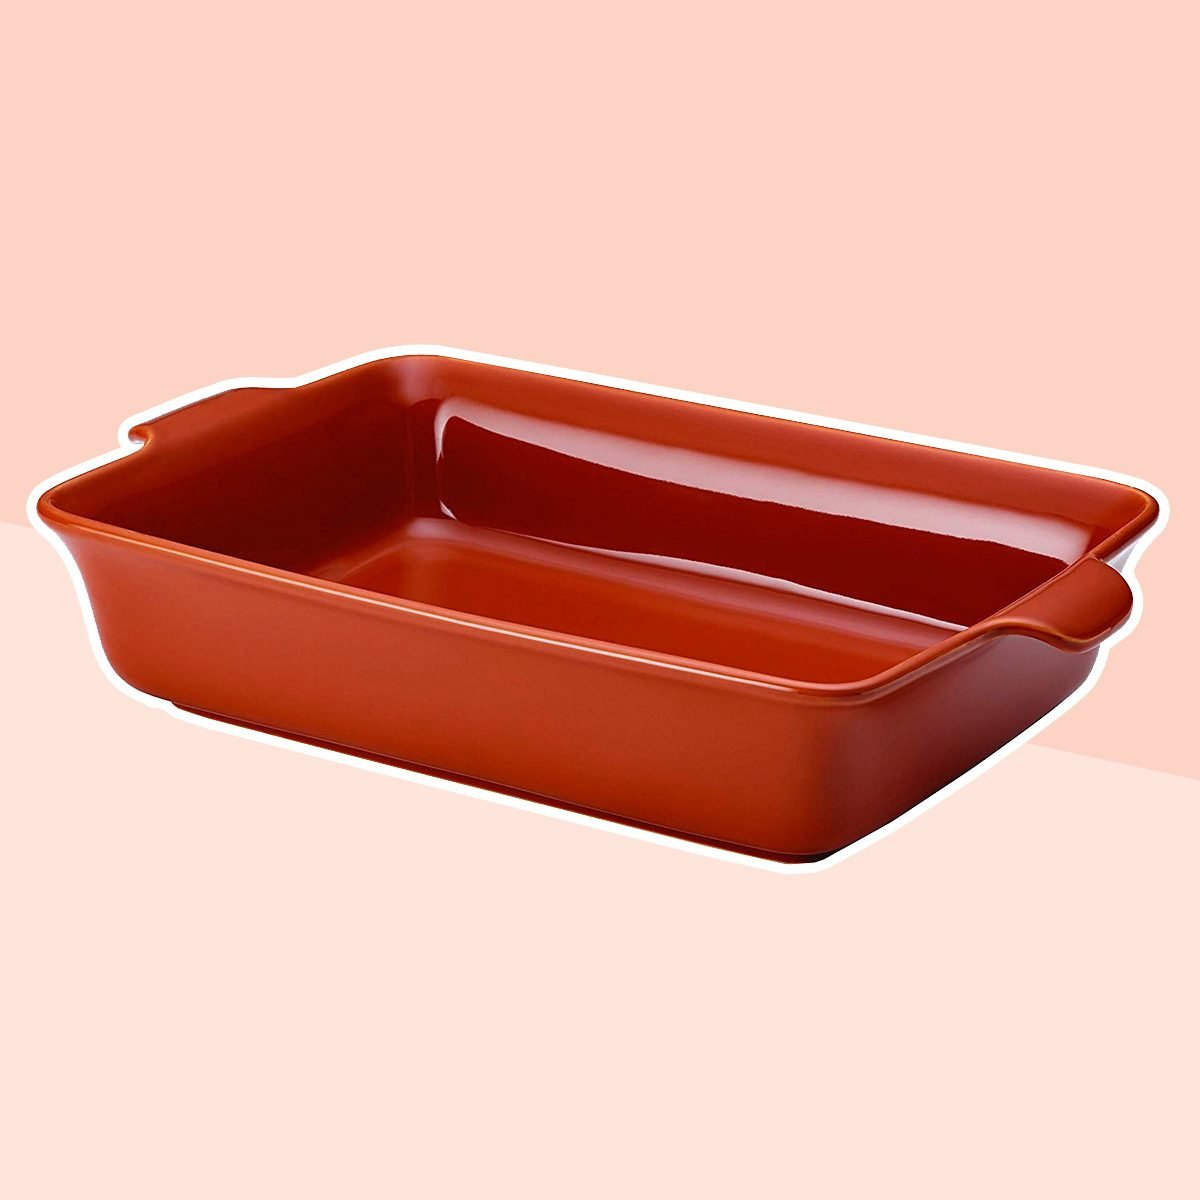 Anolon Vesta Ceramics 9-Inch x 13-Inch Rectangular Baker, Persimmon Orange